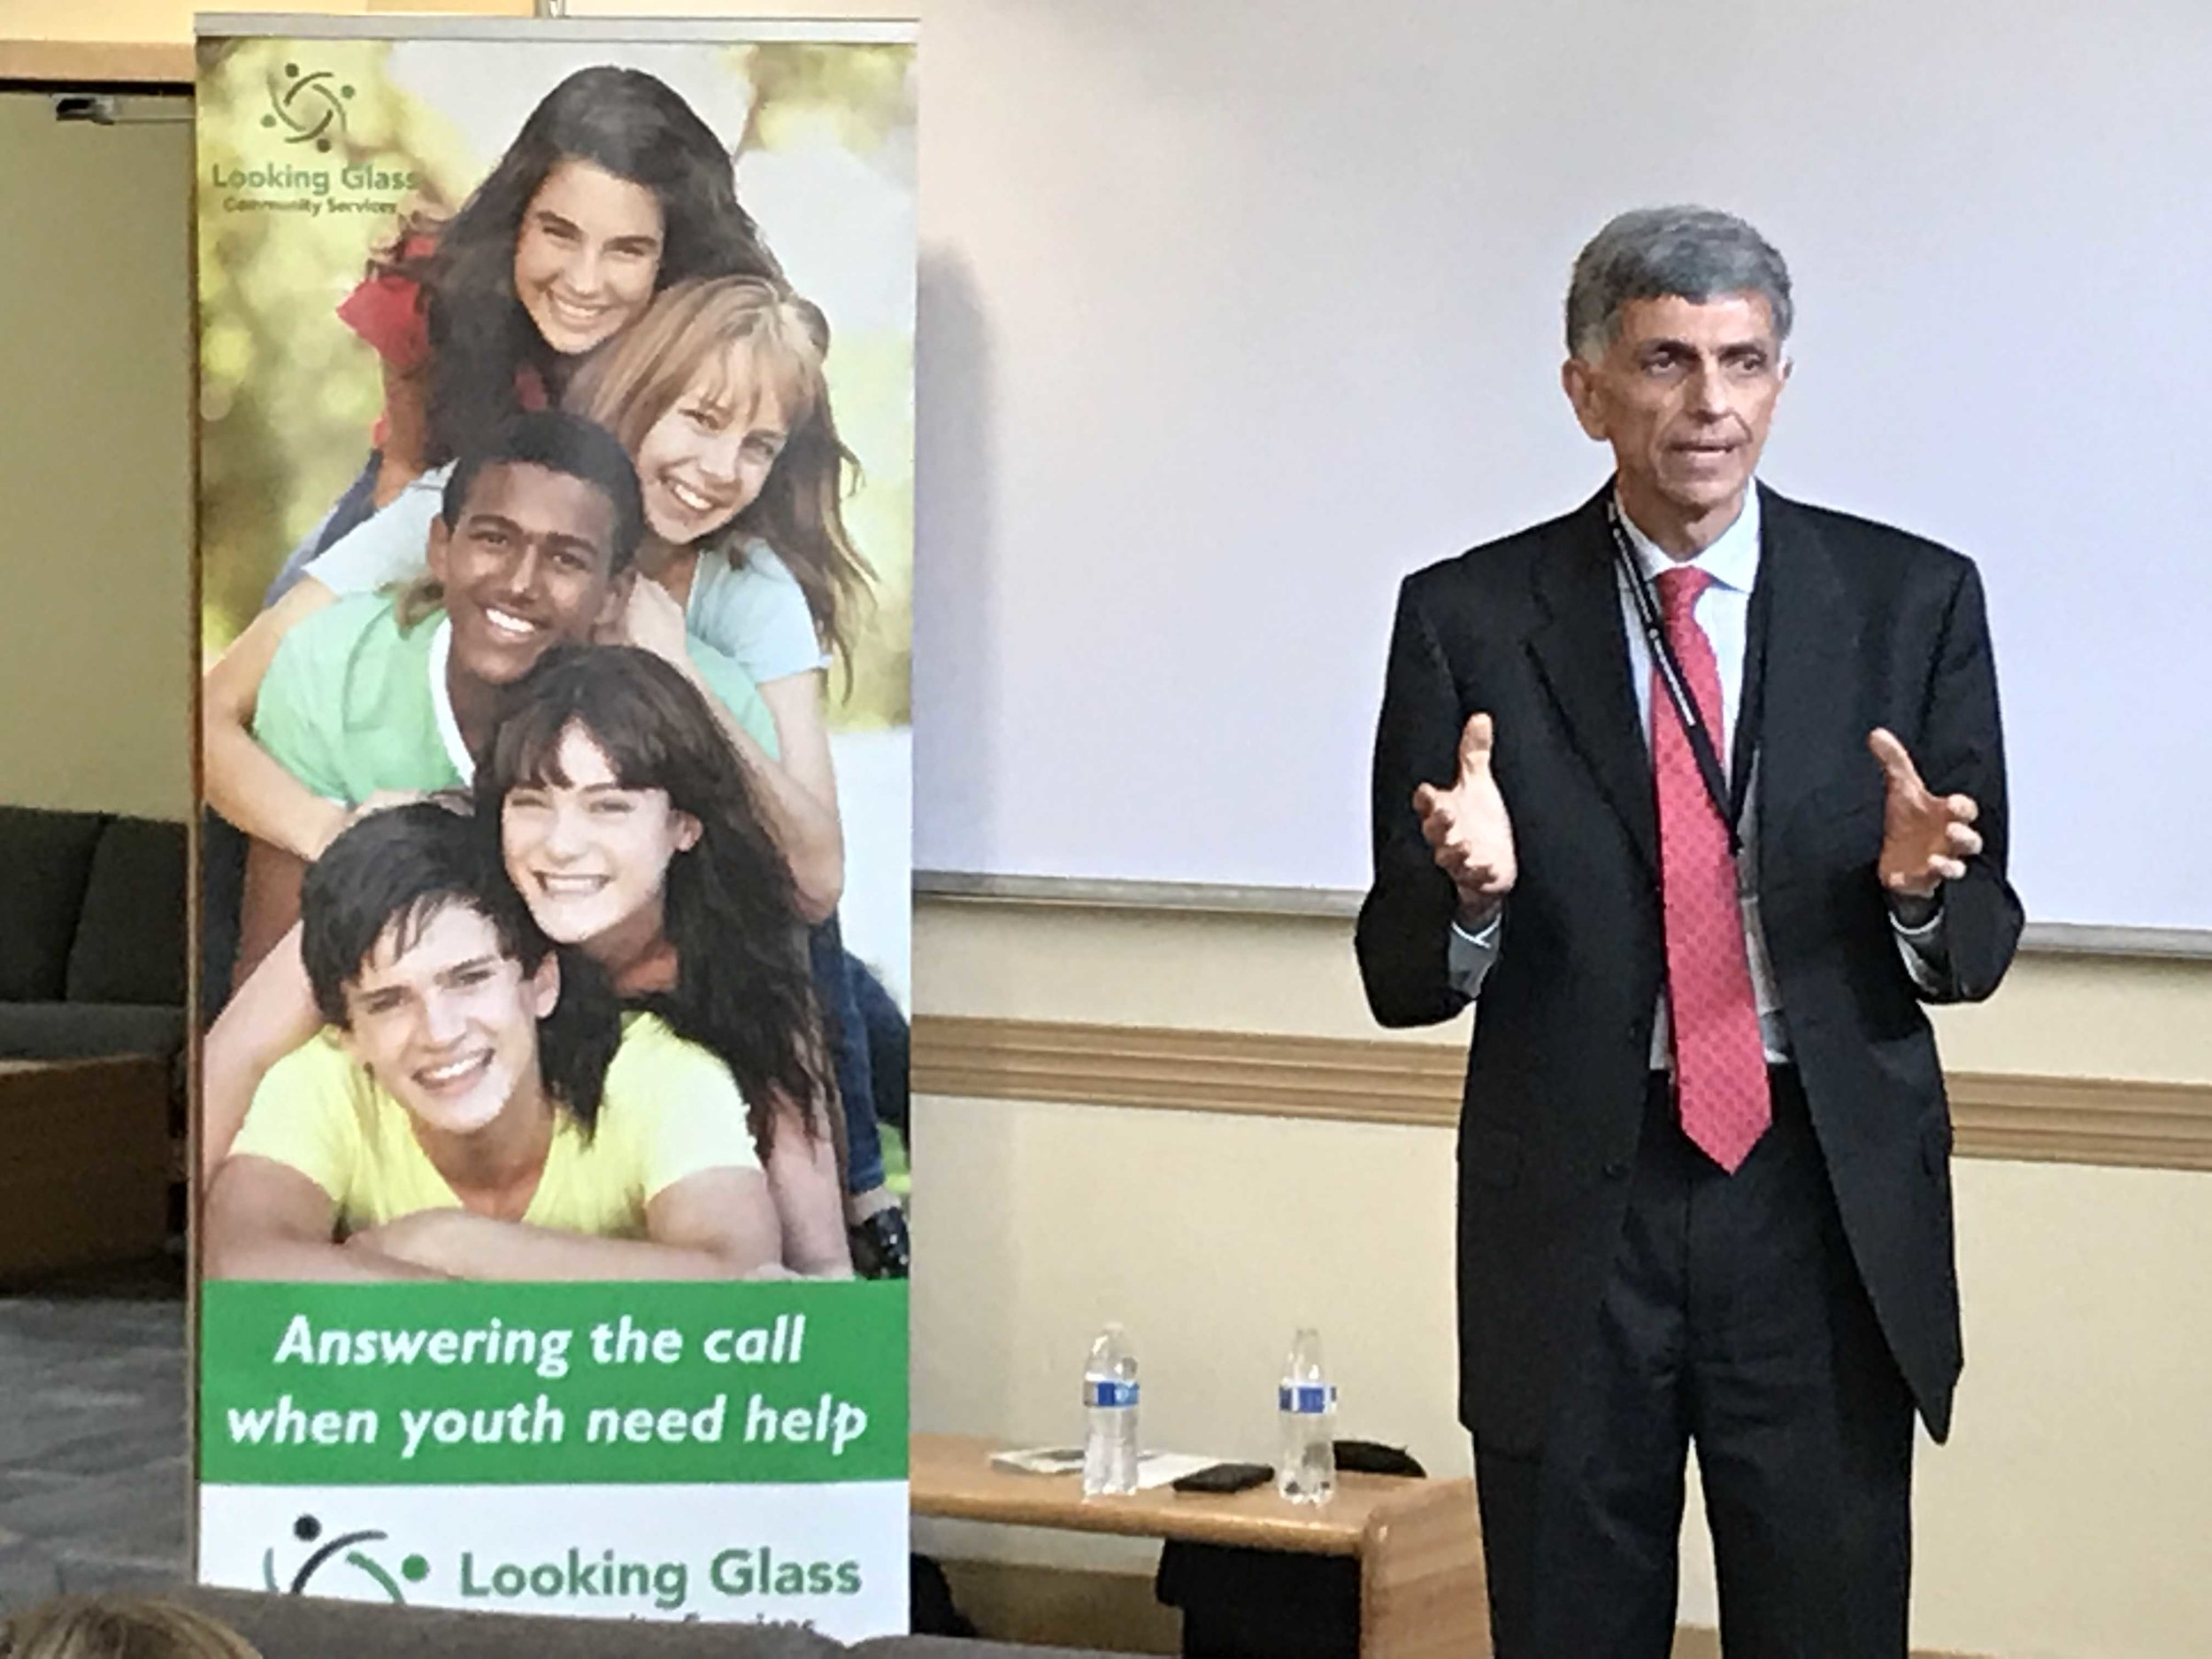 Fariborz Pakseresht, DHS Director, talks to the Looking Glass supporters about the importance of the RCC and Looking Glass services for youth in Oregon.